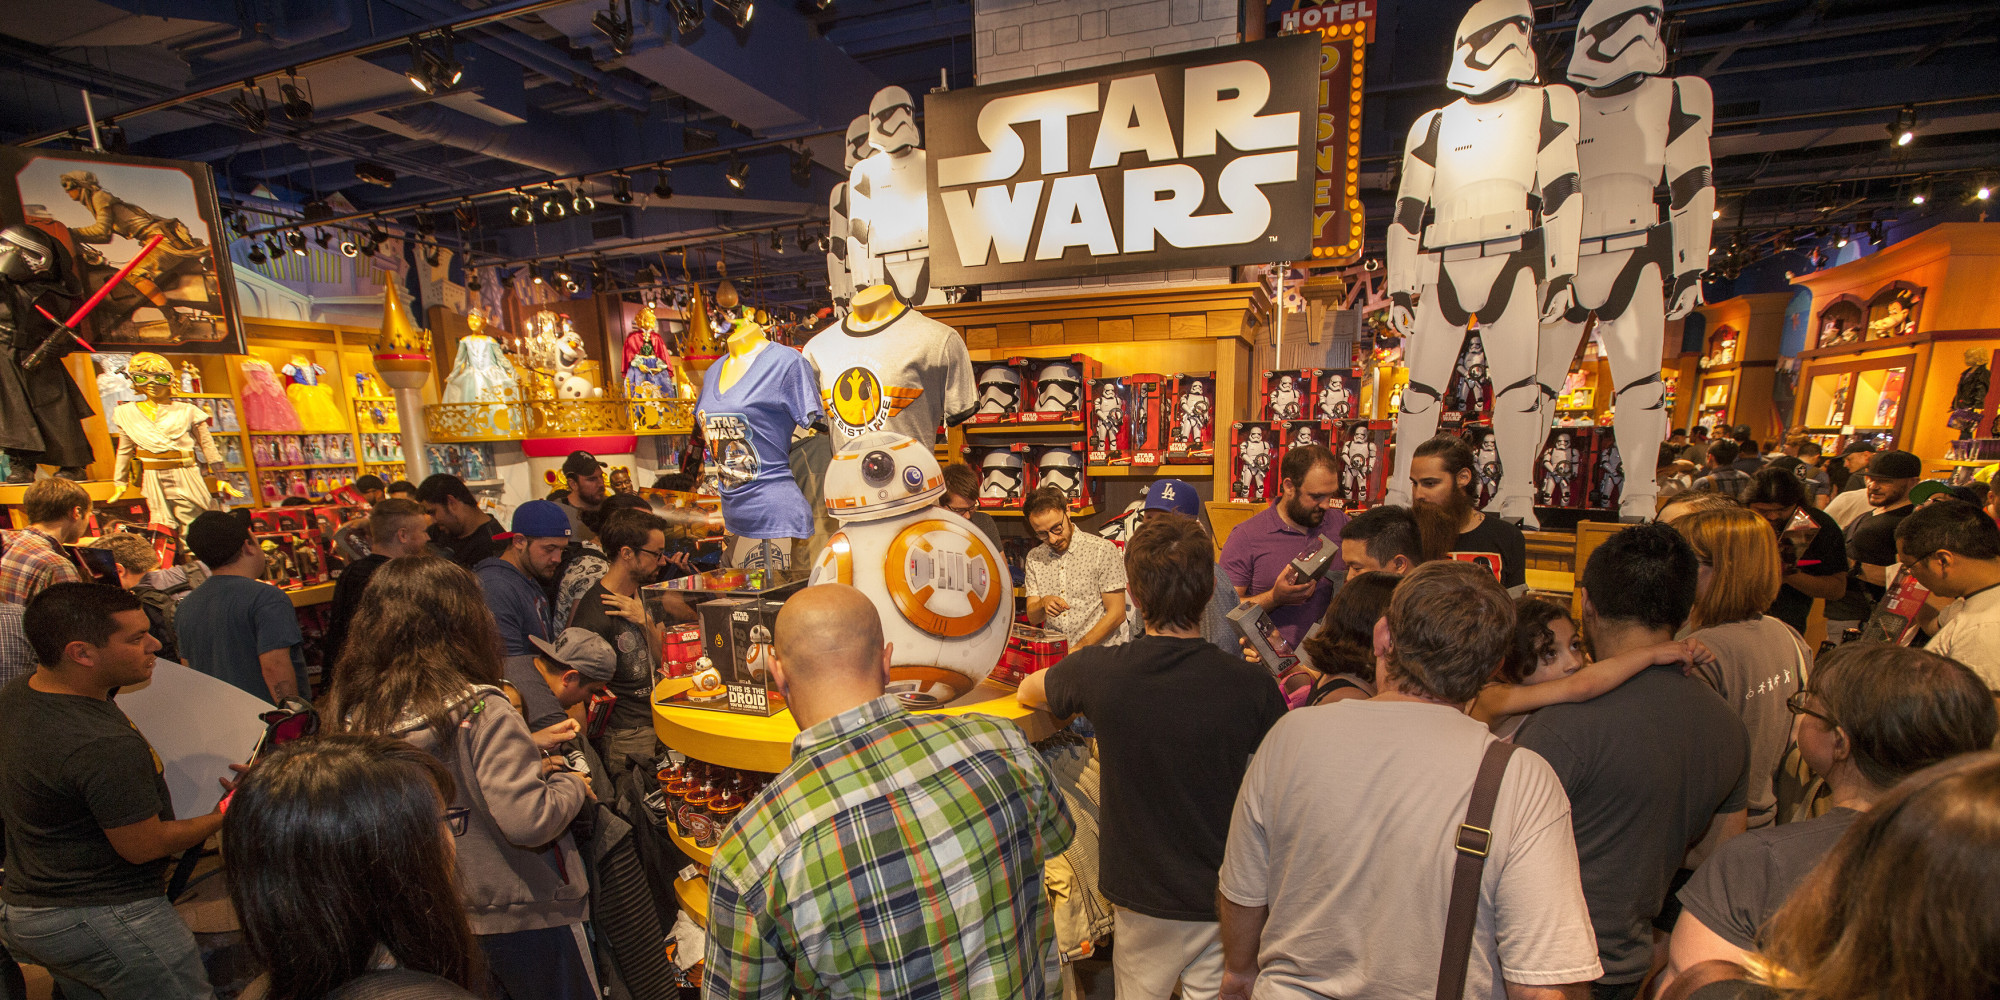 Disney 39 s 39 force friday 39 unleashes star wars merchandising for Merchandising star wars